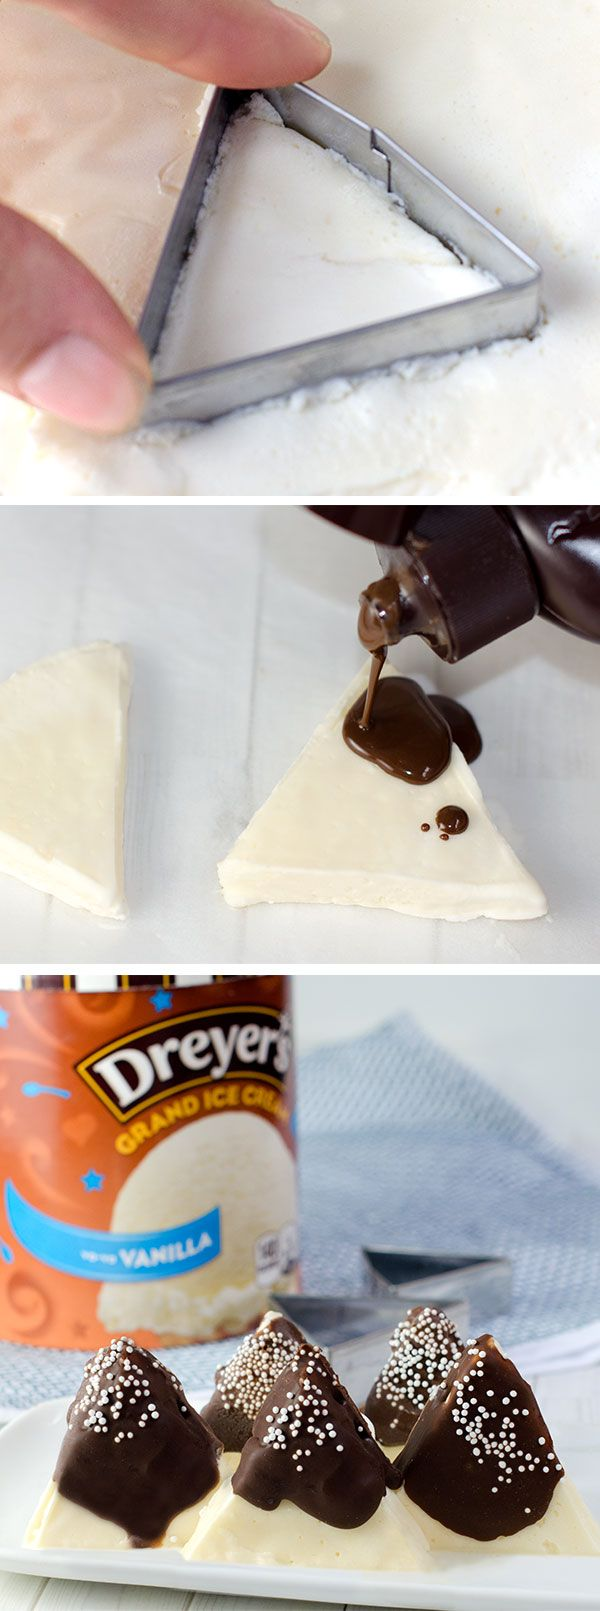 "Dreyer's Snowy Mountain Bars: Take dessert time to tasty new heights with these chocolatey, winter-inspired treats! Start by flattening Dreyer's Vanilla ice cream onto parchment paper and refreeze. Then, cut out triangle ""mountains"" with a cookie cutter, cover with a layer of chocolate shell and add sprinkle ""snow"" for the finishing touch!"